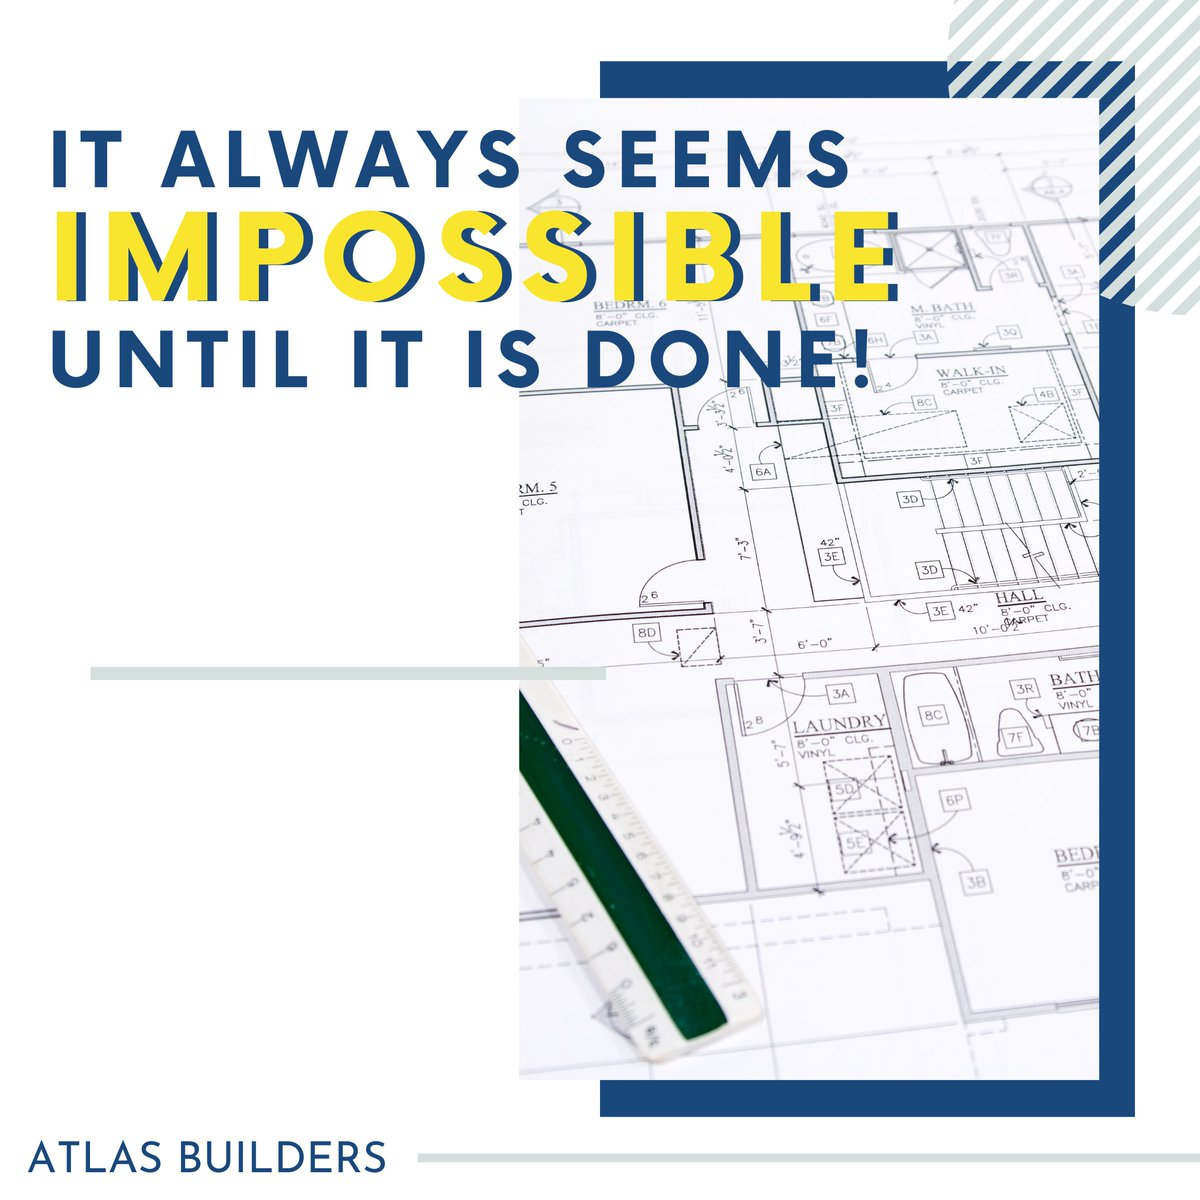 It always seems impossible until it is done! . . . .  #MotivationalMonday #MondayMotivation #MondayMotivator #MotivationalQuote #MondayMorning